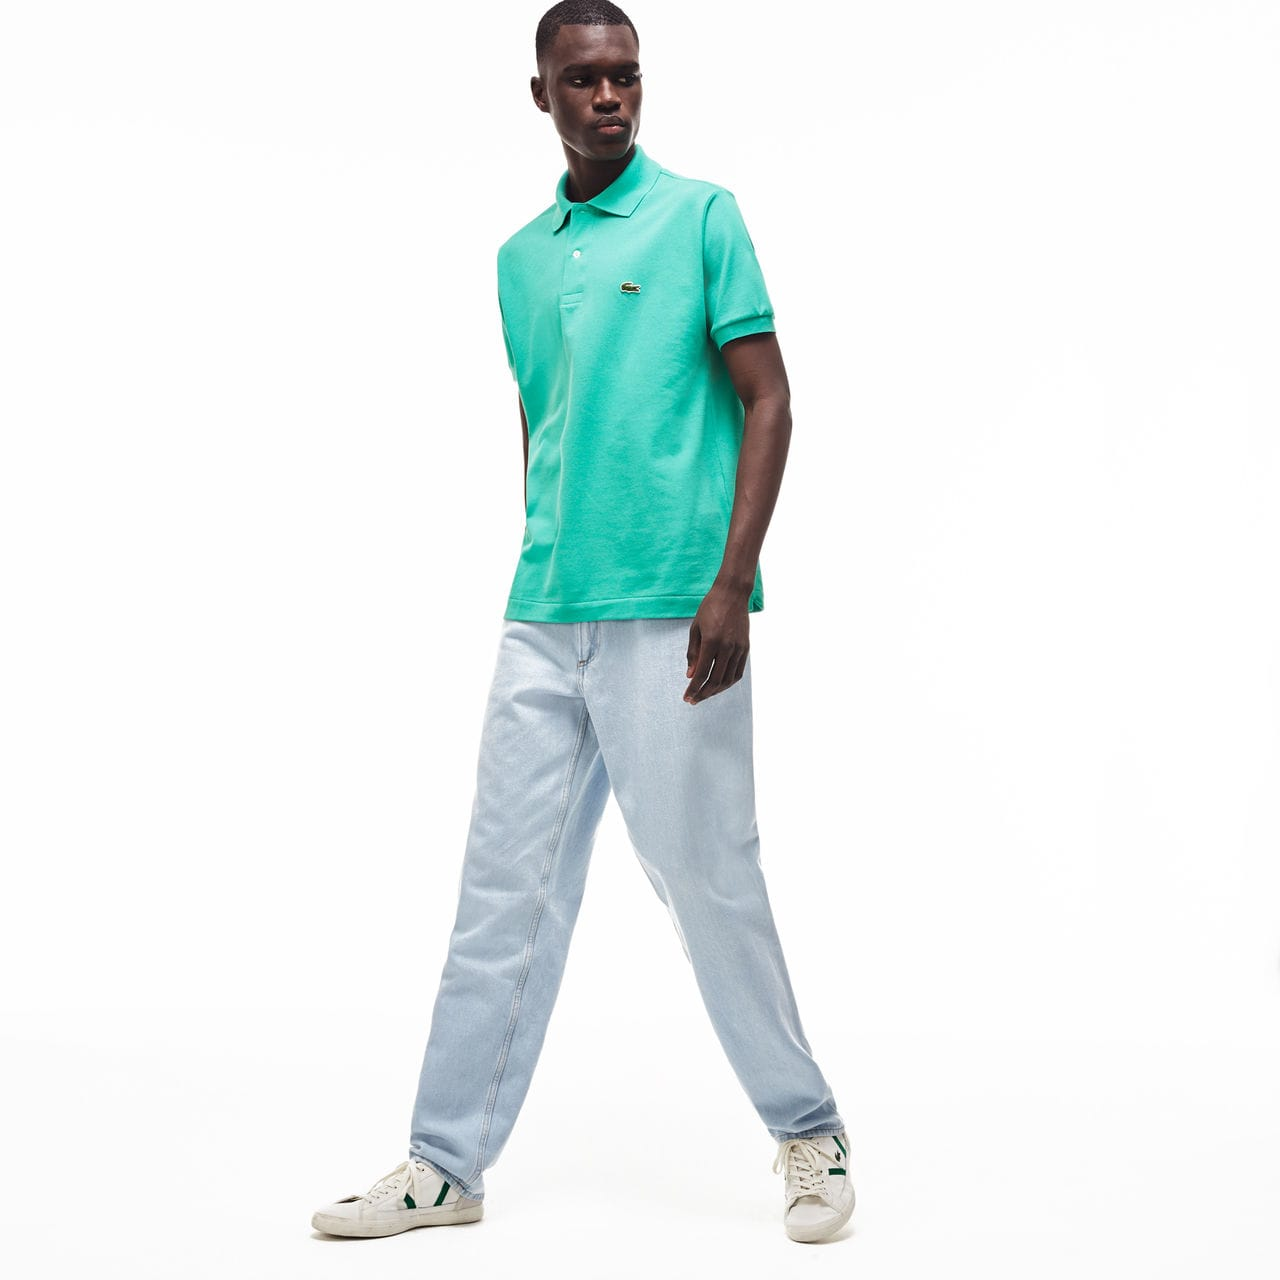 ao-polo-lacoste-classic-fit-170